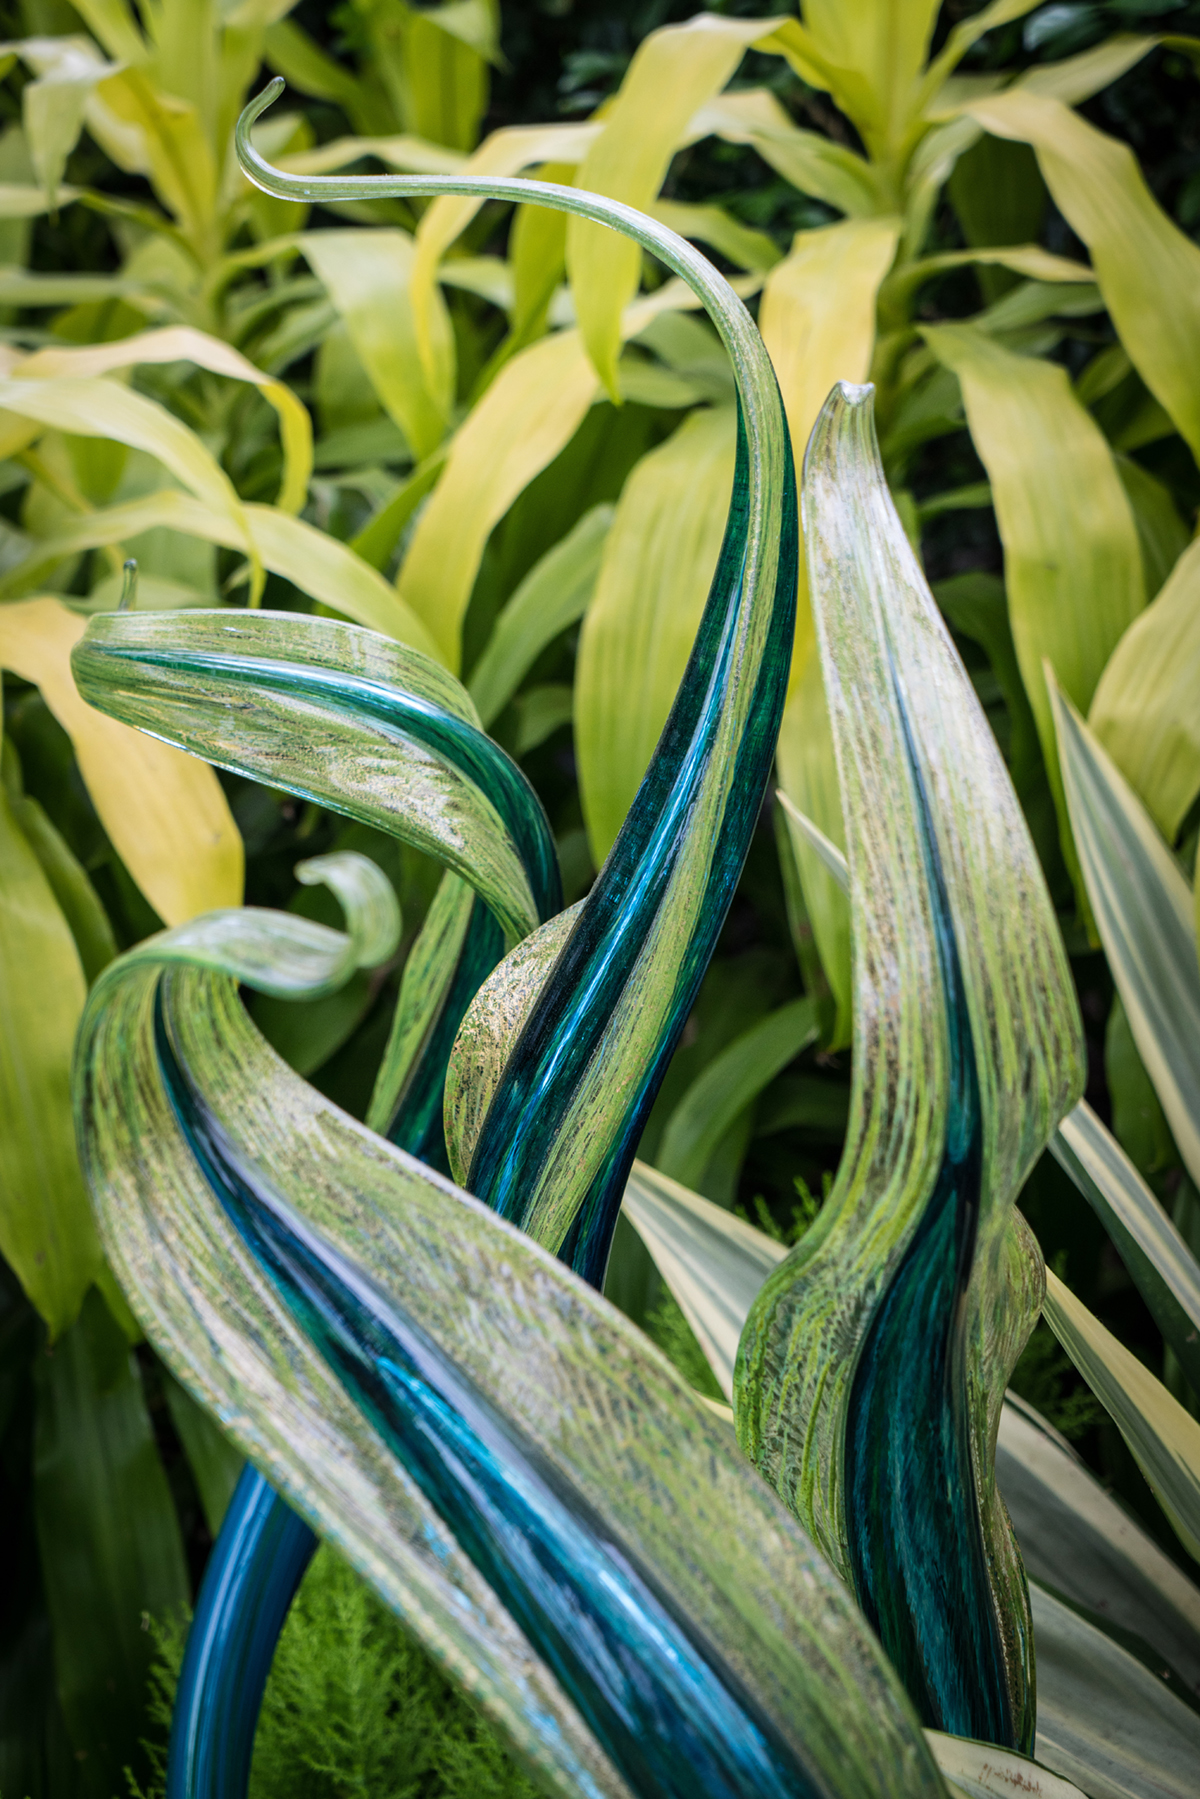 #chihuly, #leaves, #NYBG, #newyork, #botanical, #botanicalgarden, #plants, #glass, #art, #artimitatesnature, #green, #greenandblue